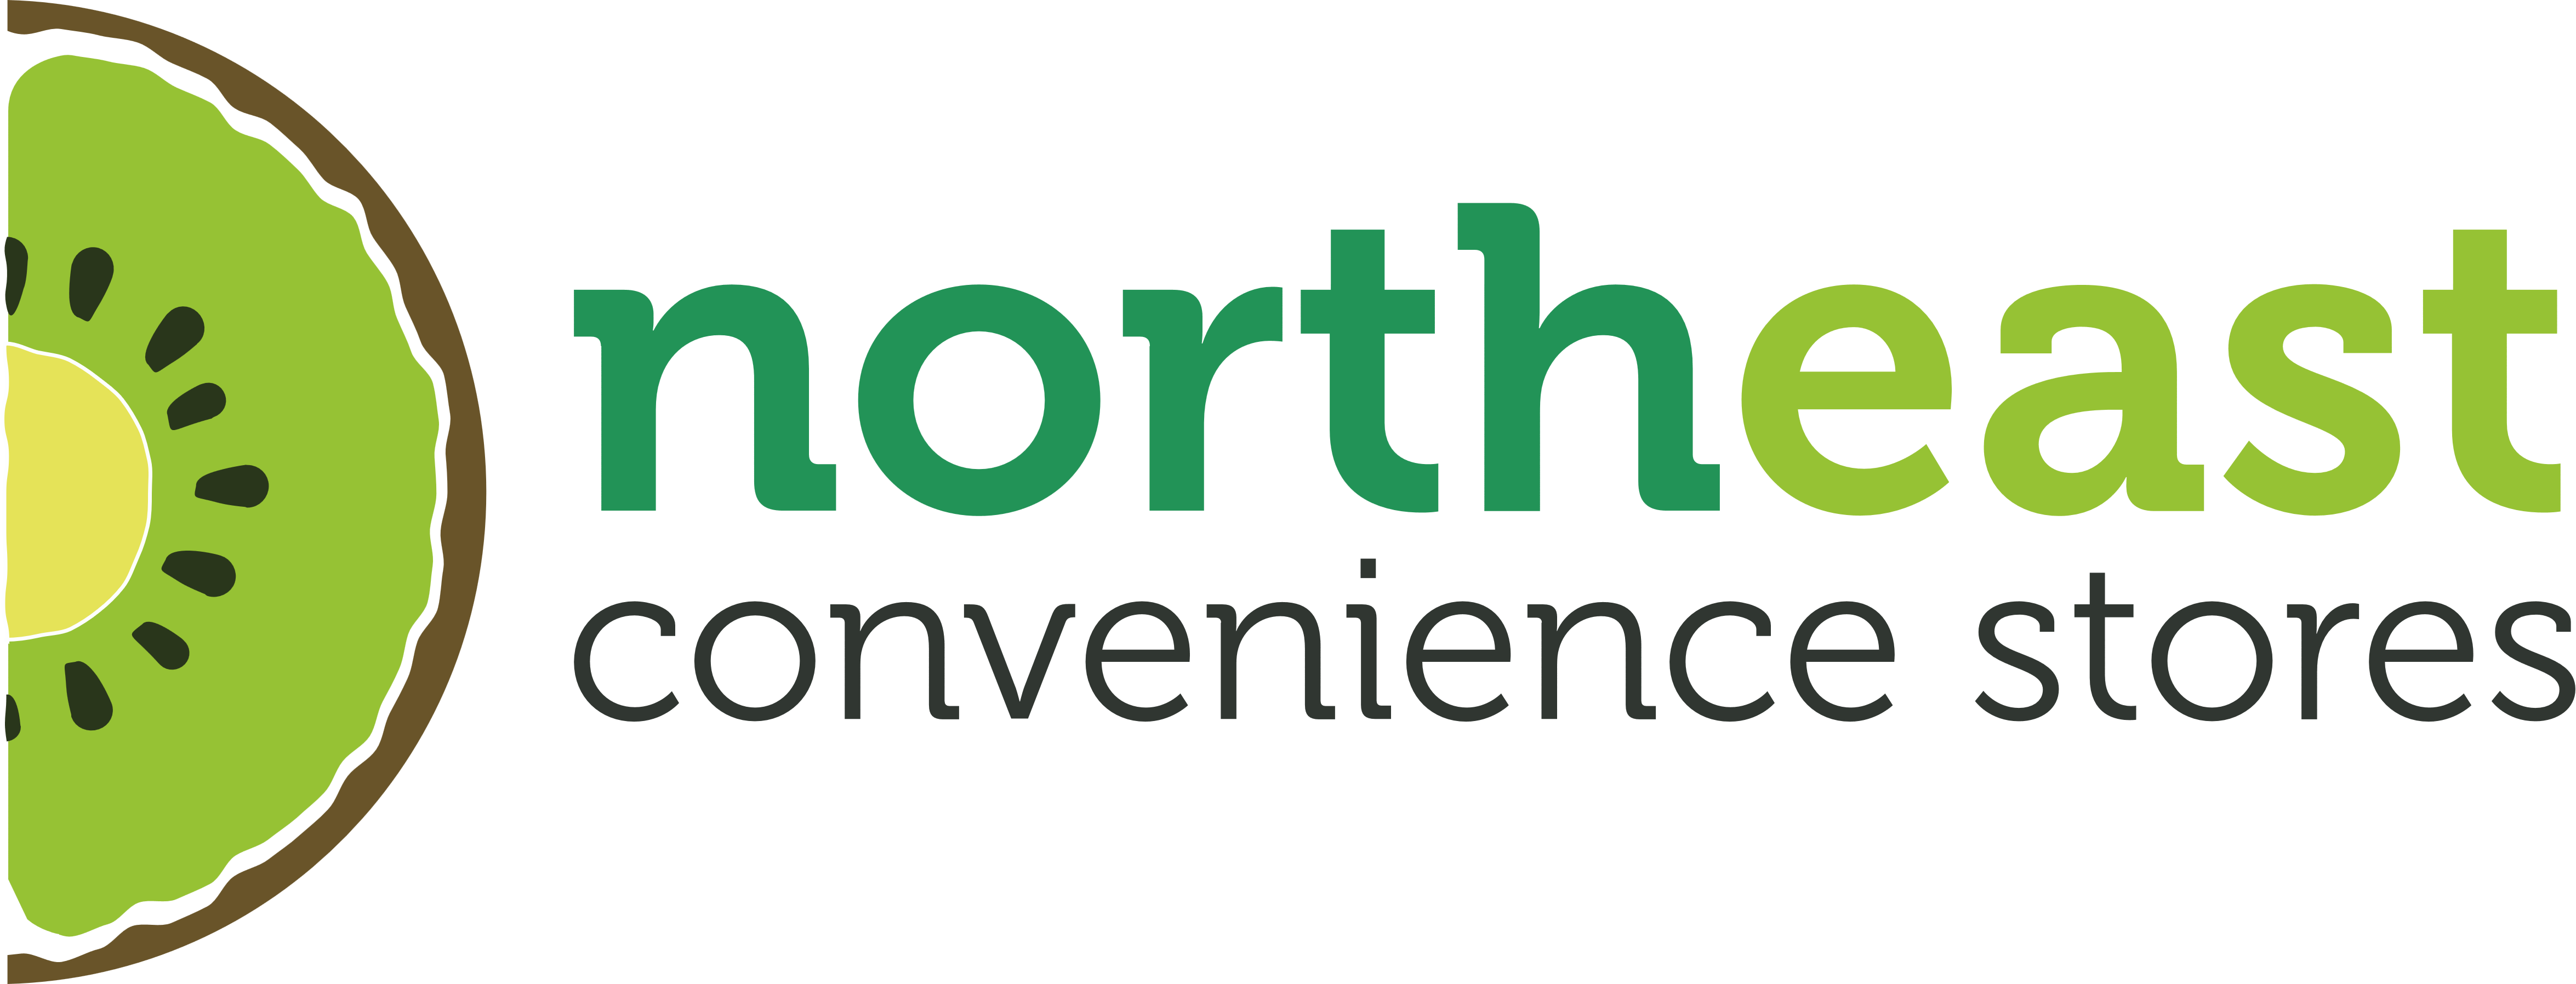 North East Convenience Stores Logos Download